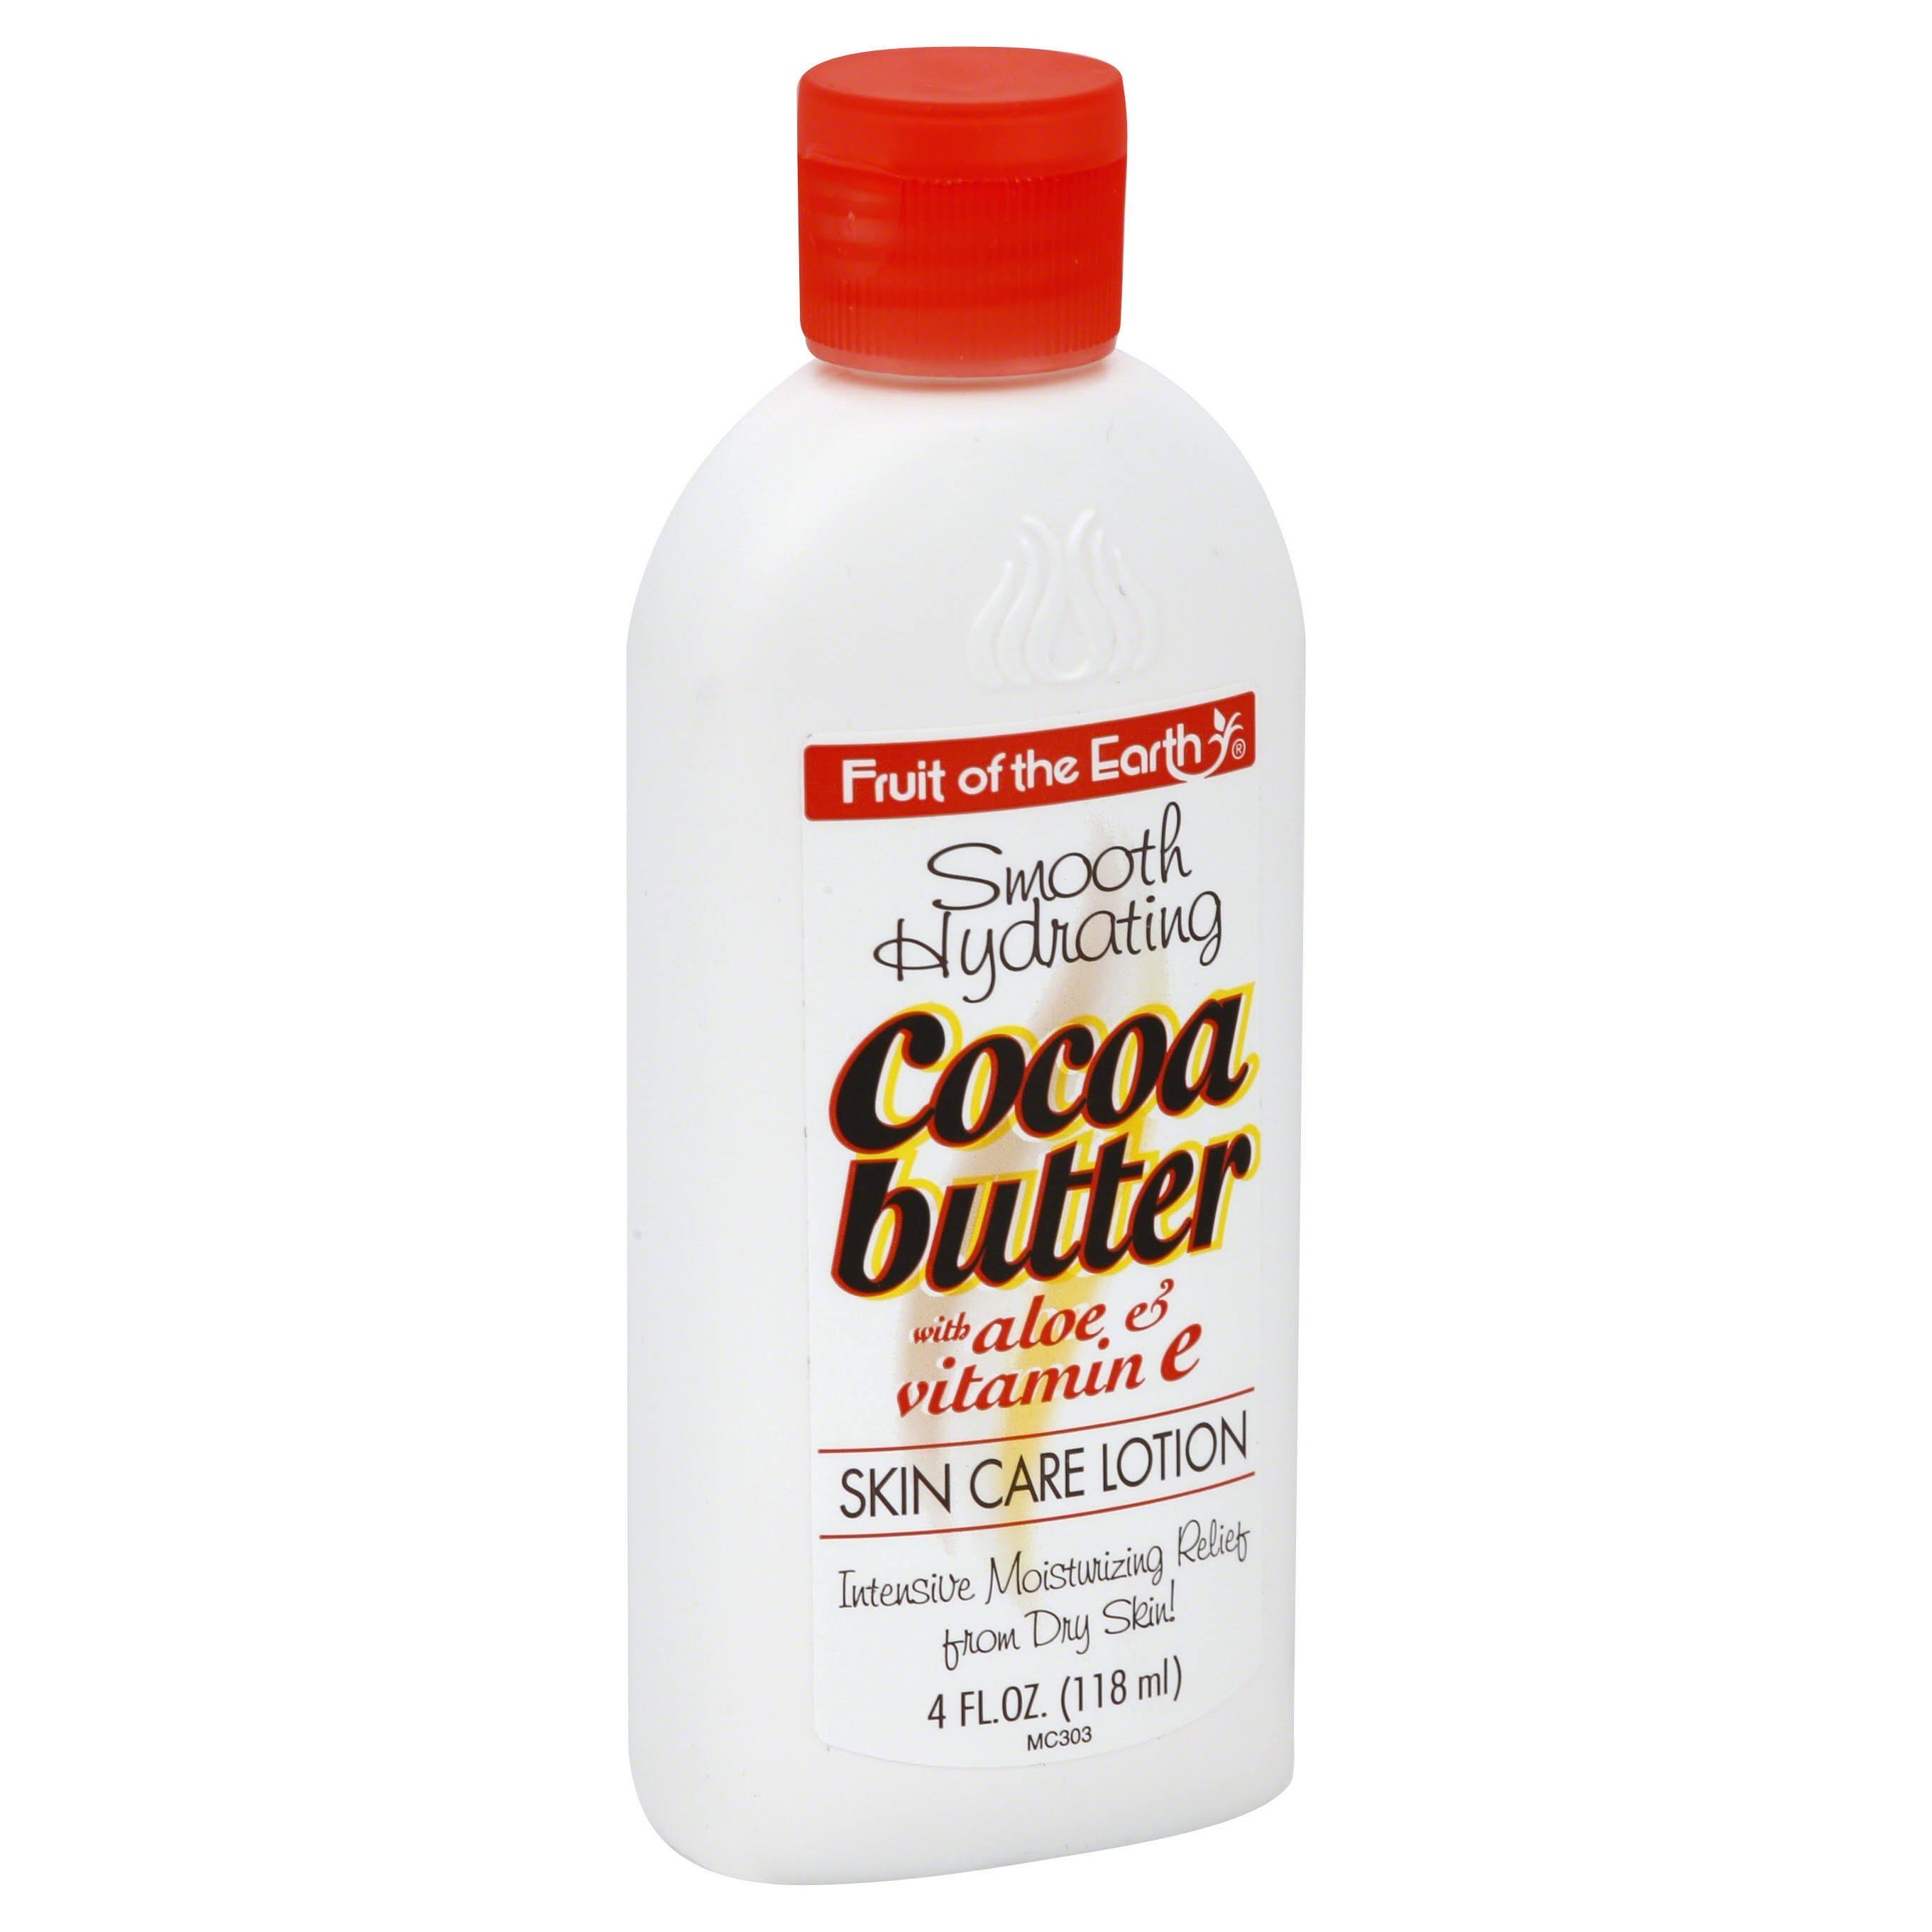 Fruit of the Earth Lotion - Cocoa Butter with Aloe, 4oz